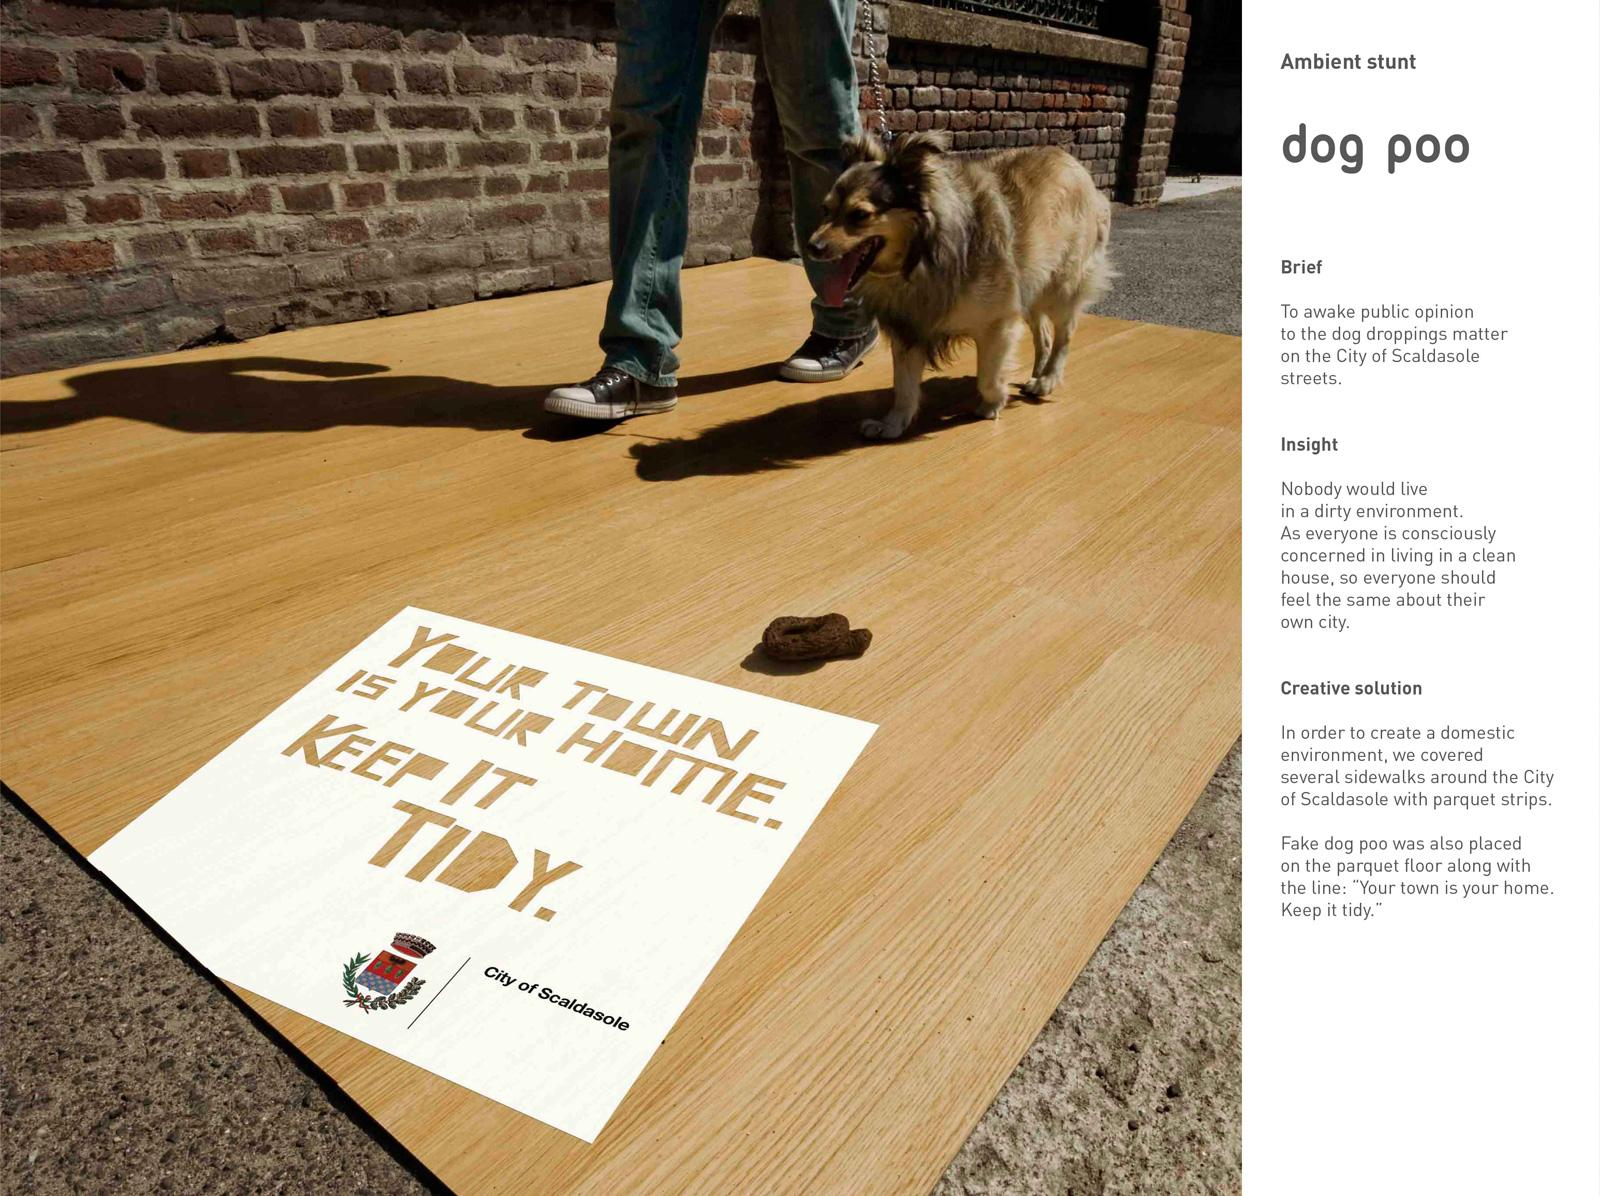 City of Scaldasole Ambient Ad -  Dog poo ambient stunt